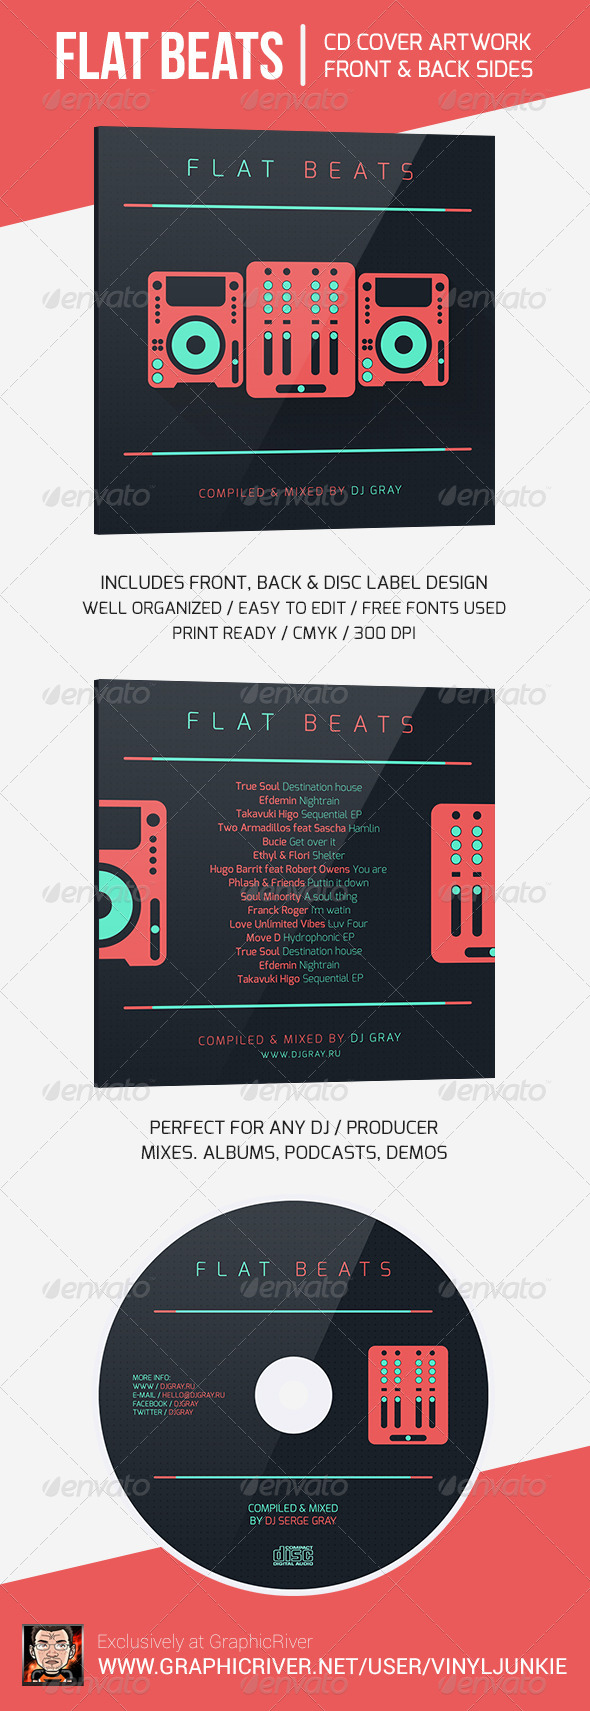 GraphicRiver Flat Beats DJ Mix CD Cover Artwork Template 6132916